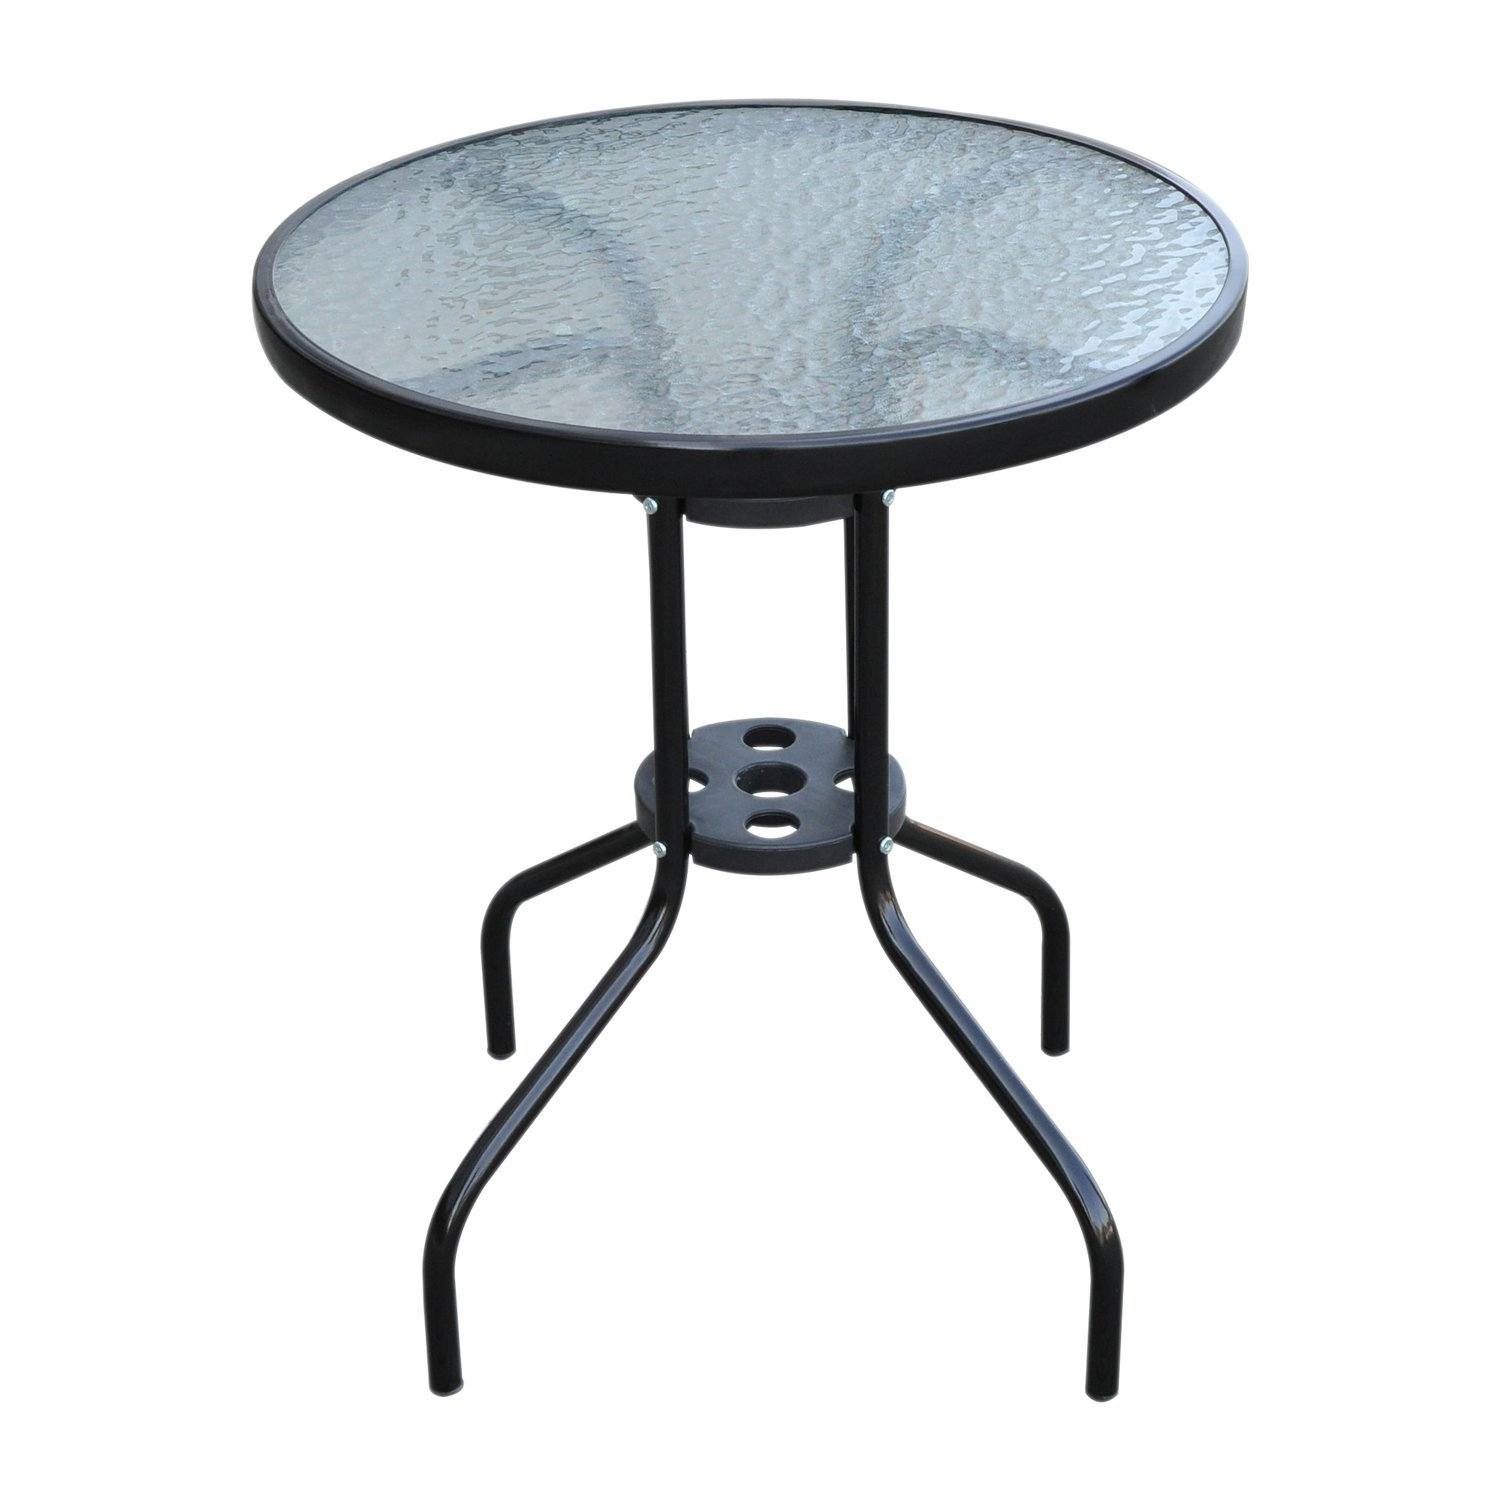 Outsunny Table Round Coffee Table With Tempered Glass Garden Φ60x70 Cm Black